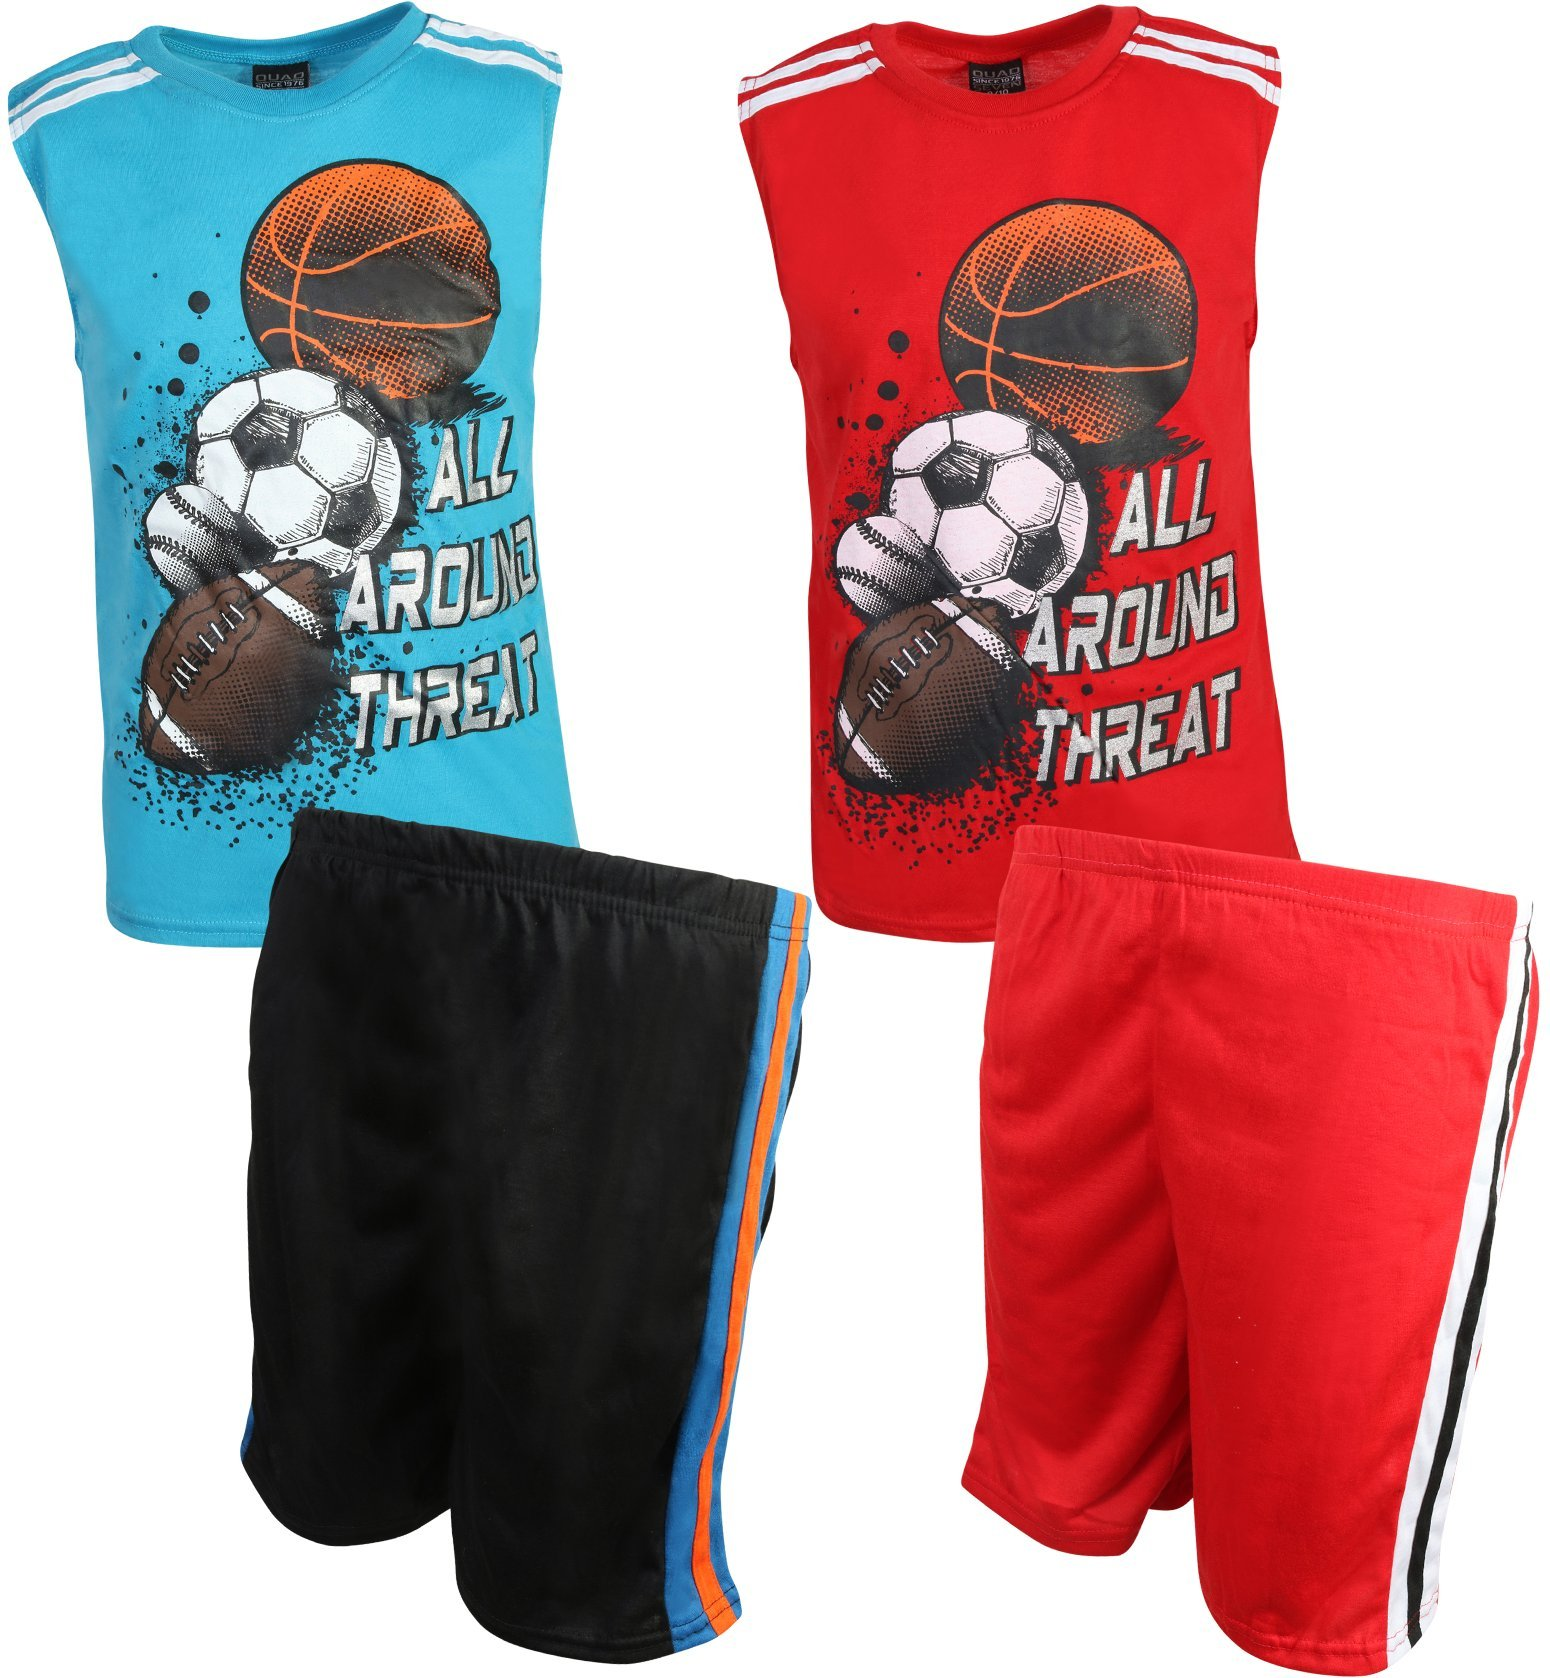 Quad Seven Boy's 4-Piece Pajama Short Set, All Around Threat, Size 16/18' by Quad Seven (Image #1)